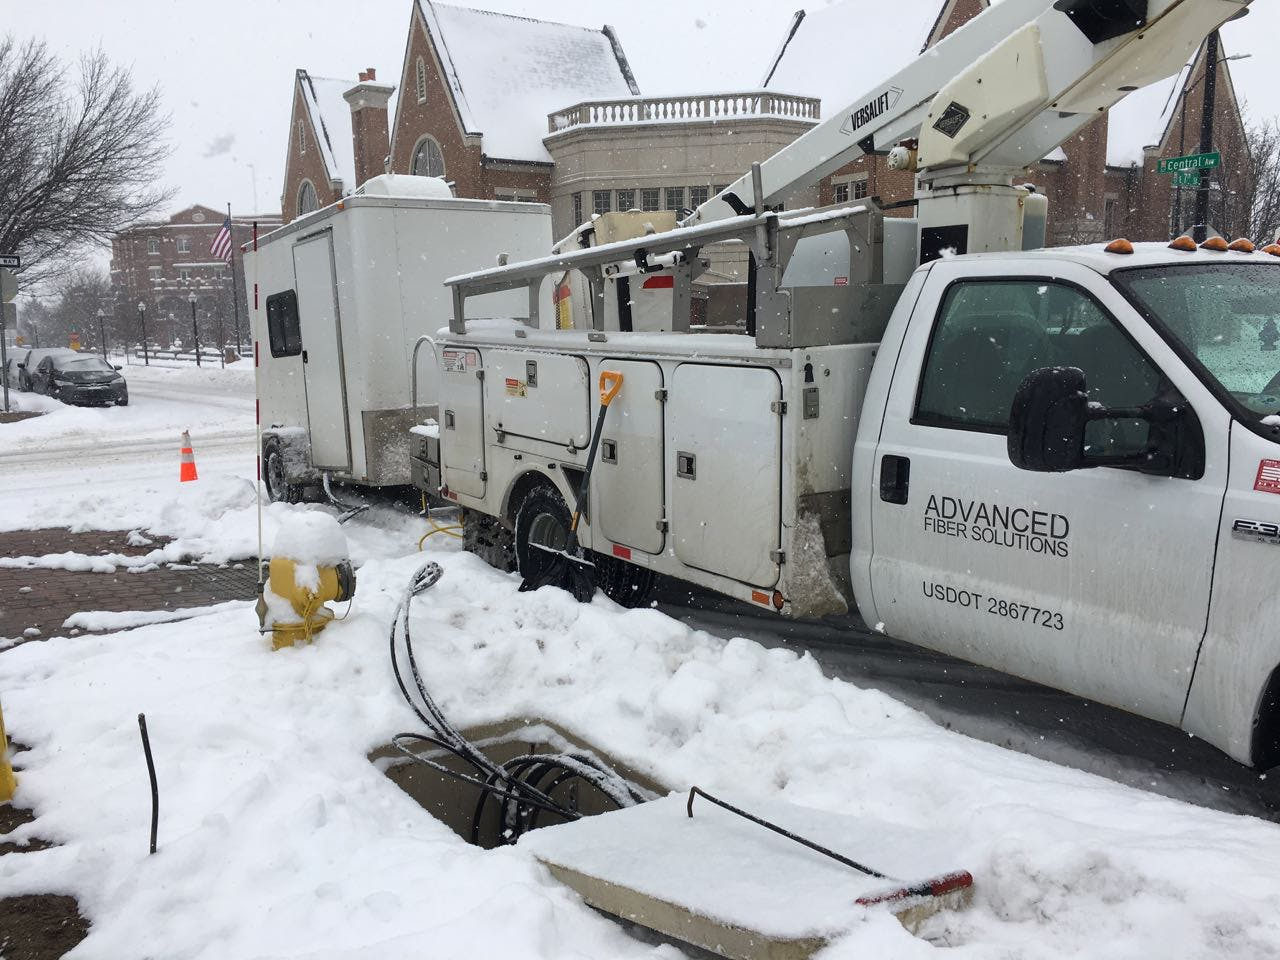 Splicing fiber in winter